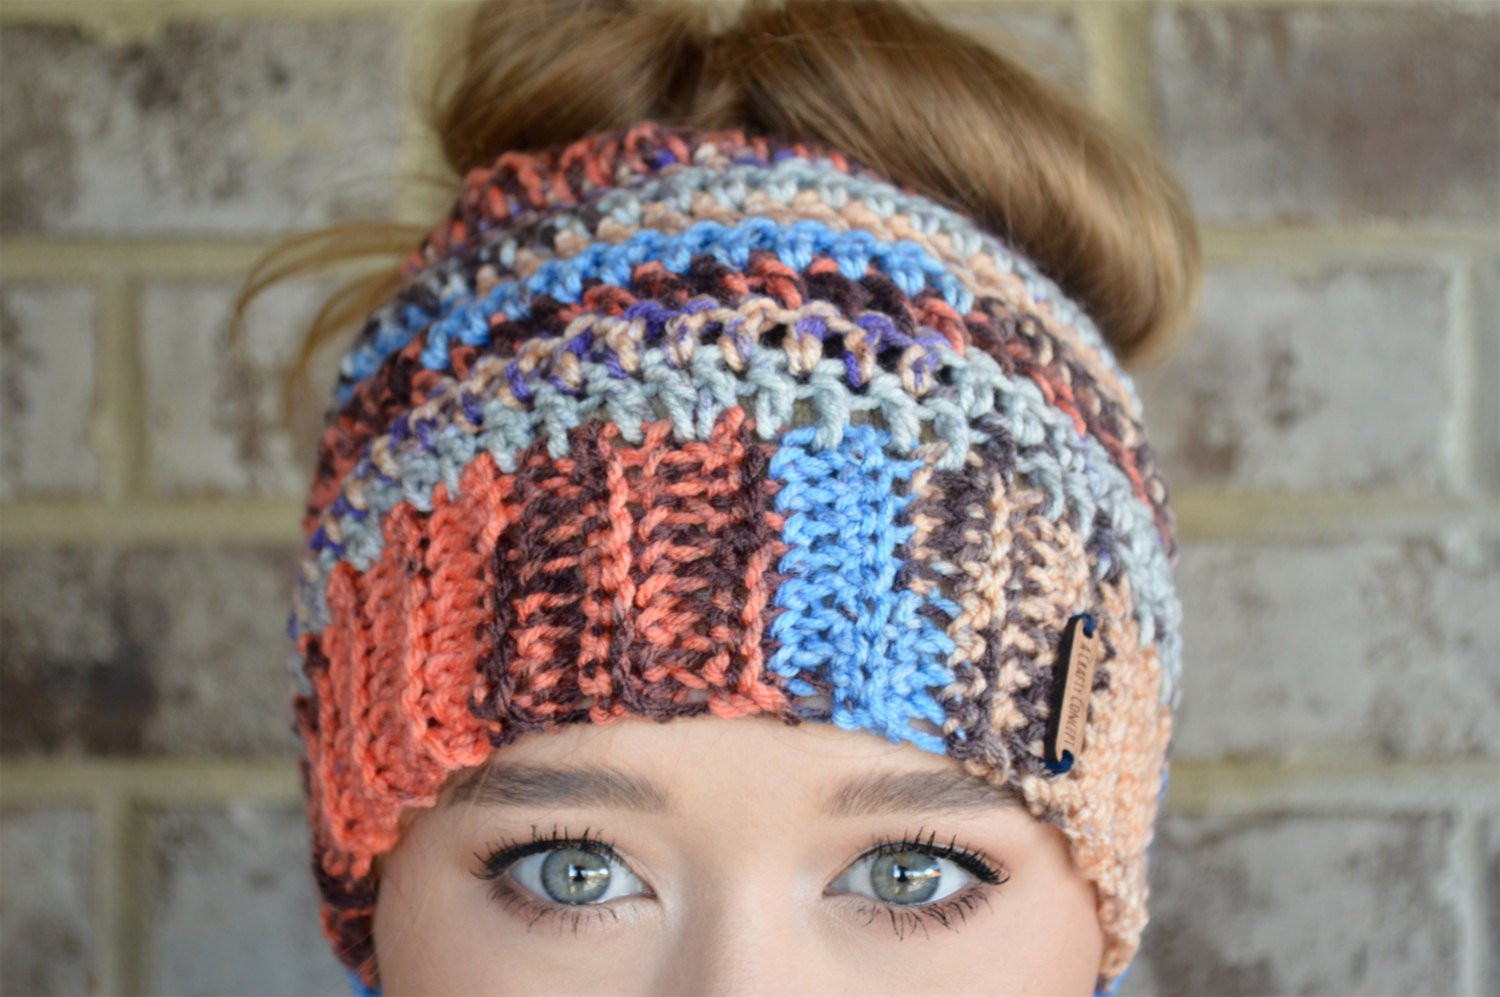 Lovely Crochet Messy Bun Beanie Messy Bun Hat Messy Bun Beanie Messy Bun Beanie Crochet Pattern Of Adorable 45 Pics Messy Bun Beanie Crochet Pattern